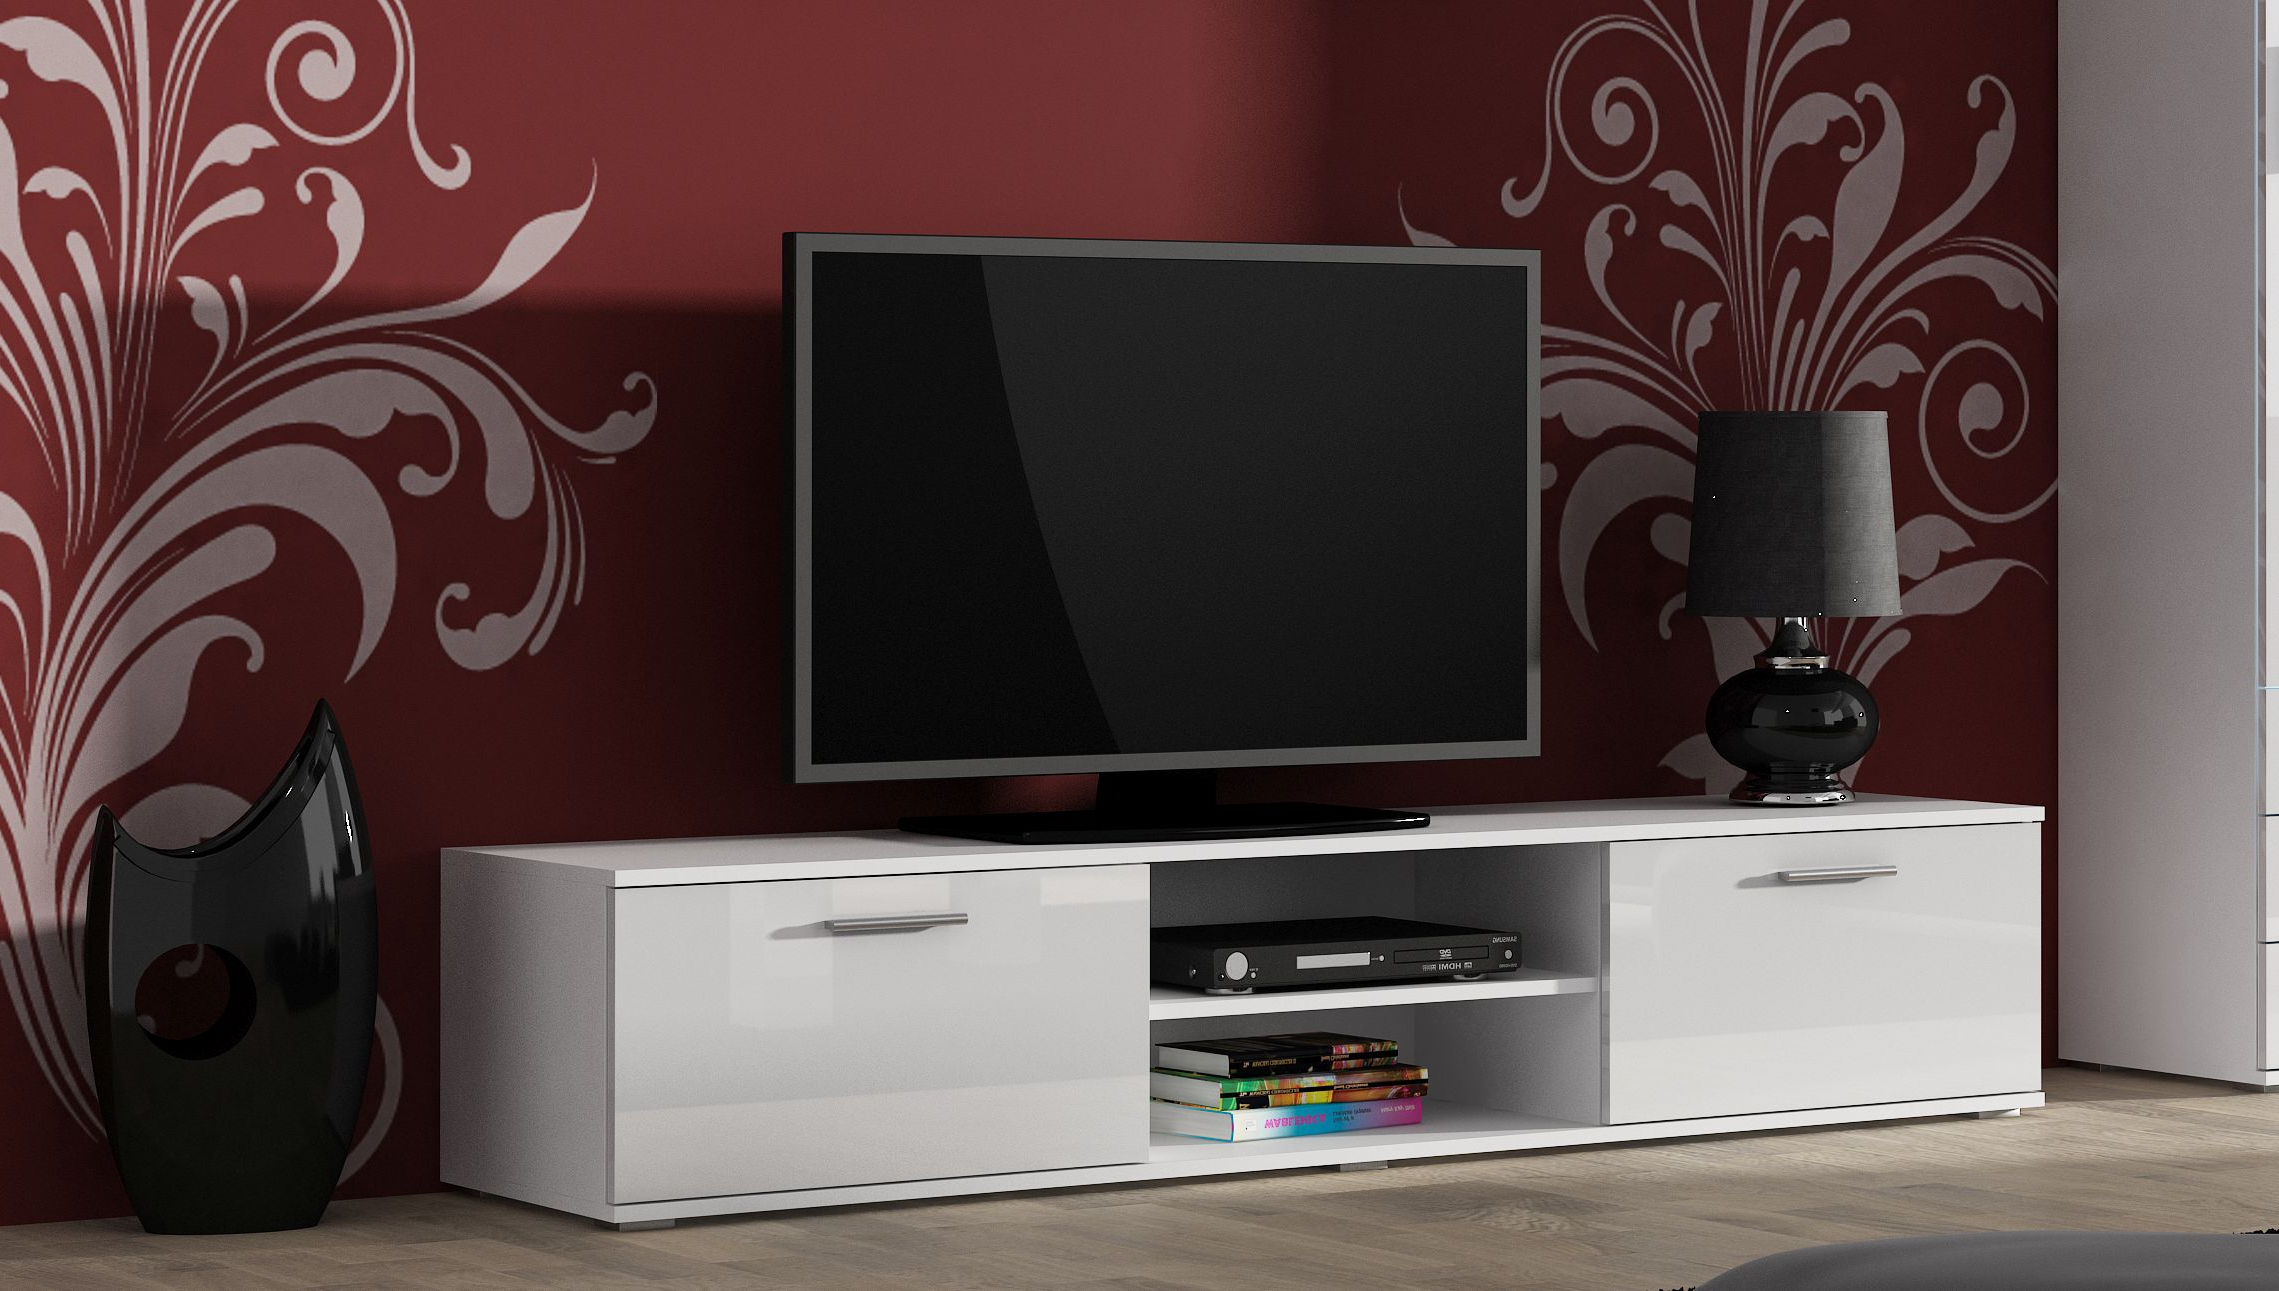 Preferred Soho High Gloss Tv Cabinet With 2 Doors And Shelf – White – Modern Pertaining To Soho Tv Cabinets (Gallery 2 of 20)